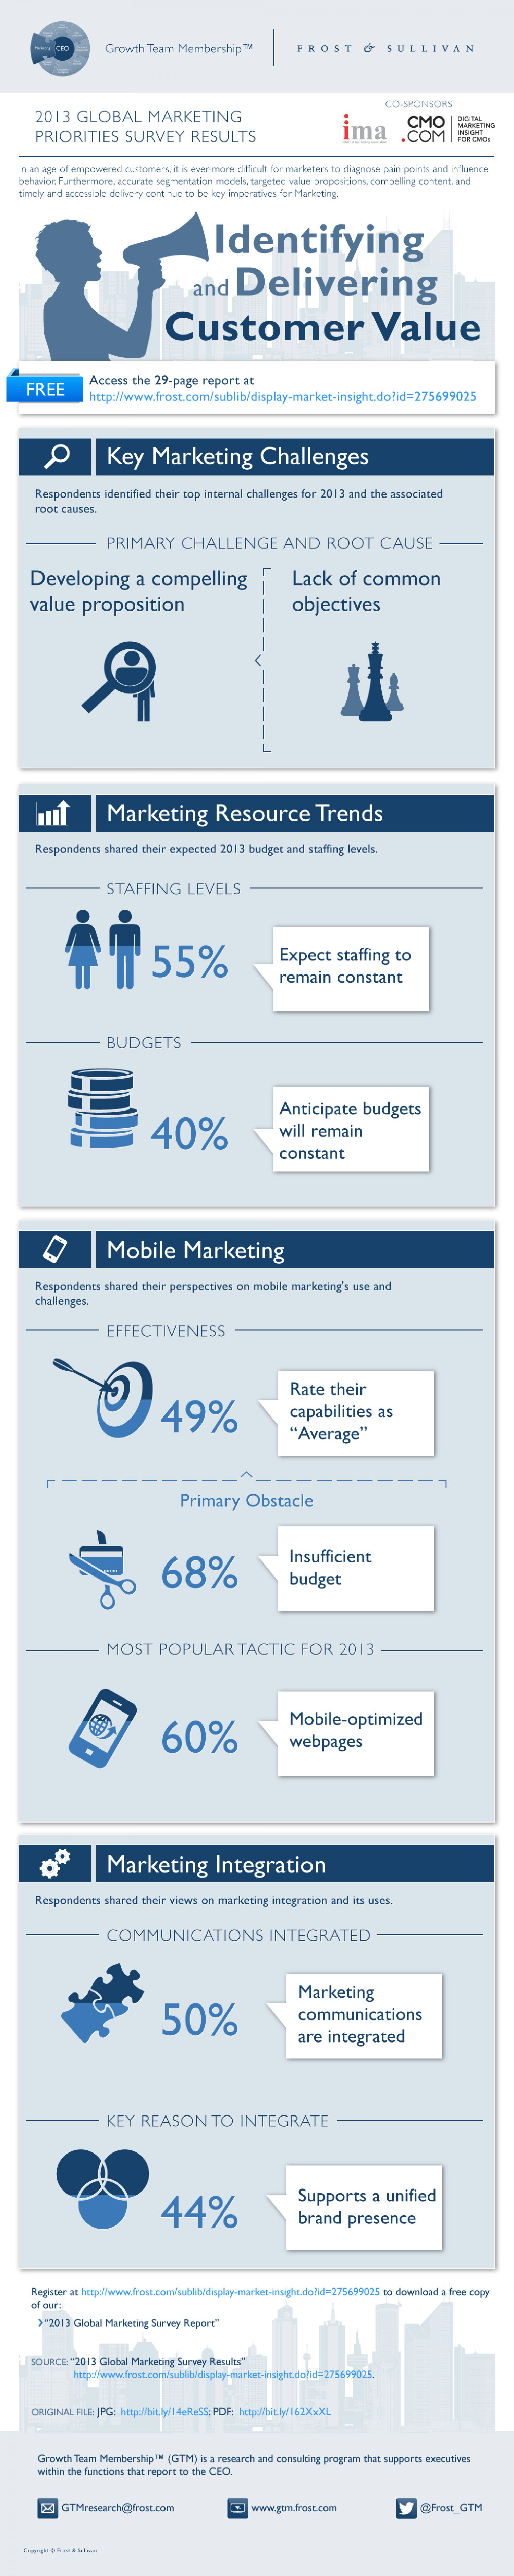 Identifying and Delivering Customer Value Infographic